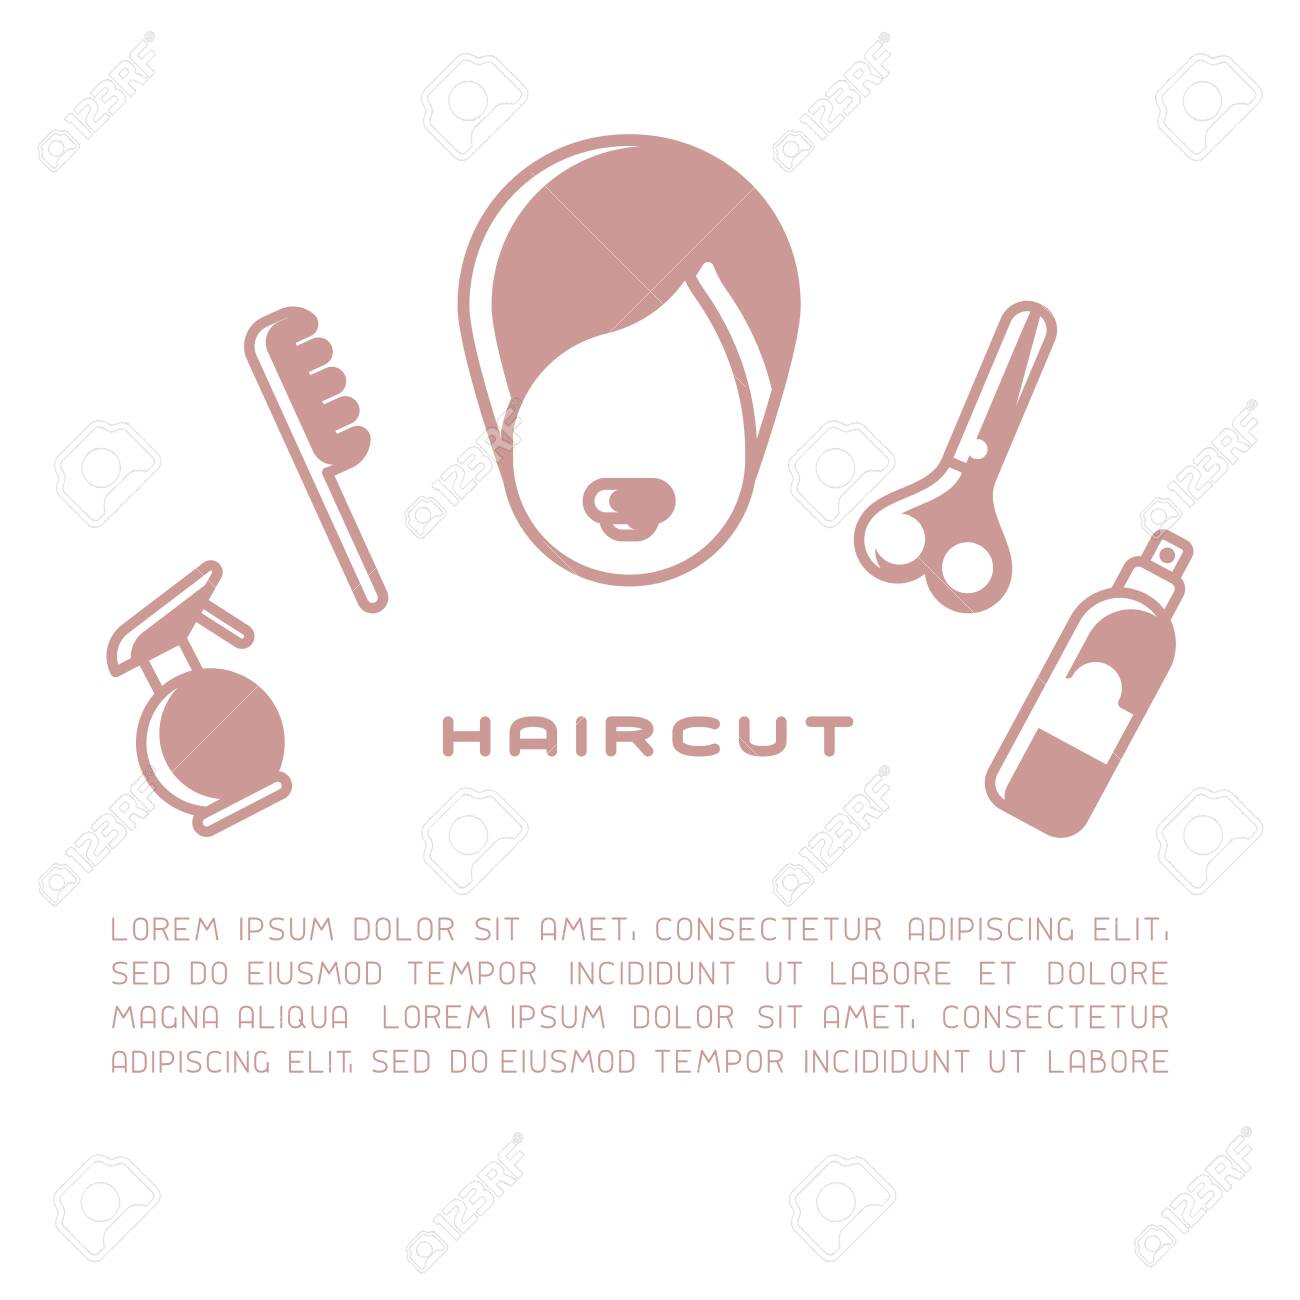 Female head surrounded by haircut tools. Flat style vector illustration - 129013093